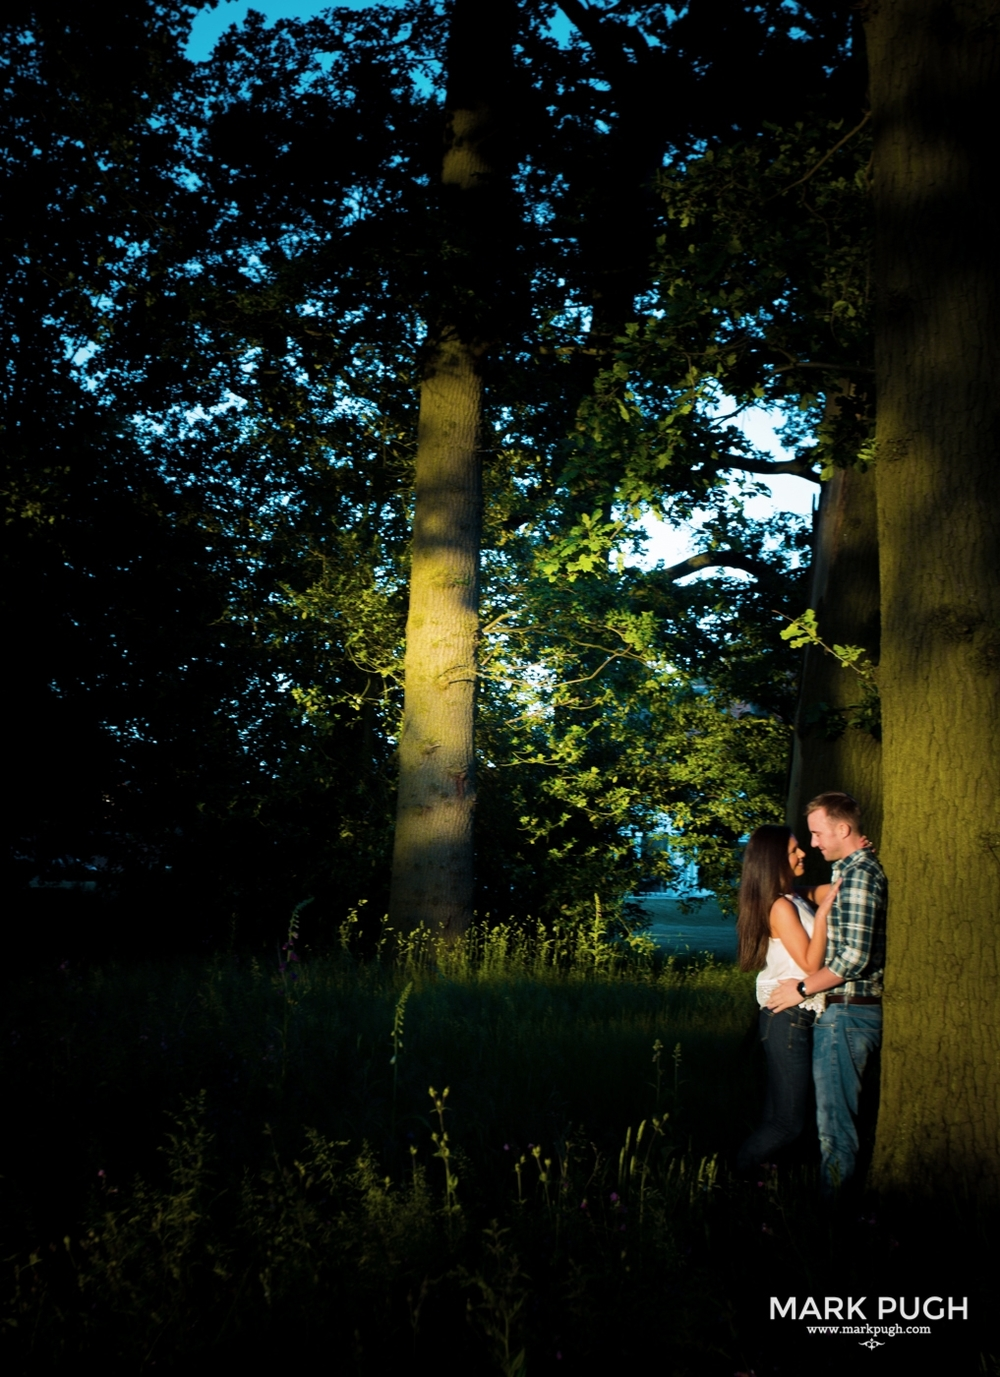 014 -  Jacqueline and Davids preWED love session at Kelham House Country Manor Hotel by www.markpugh.com - 2.JPG